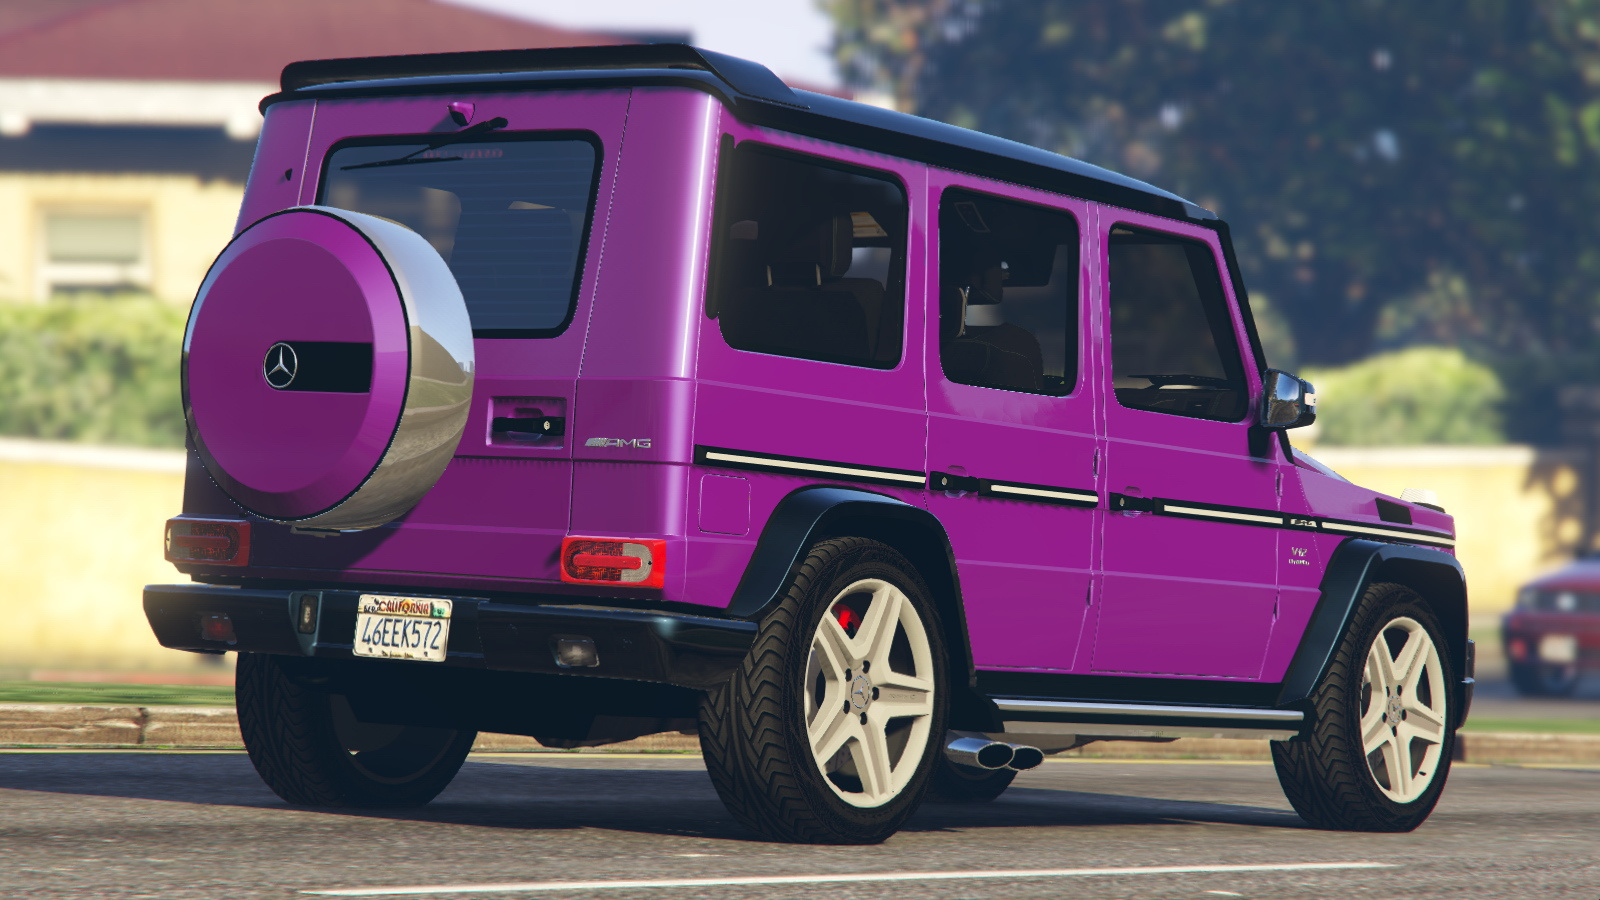 2013 mercedes benz g65 crazy color edition paintjob for Mercedes benz g65